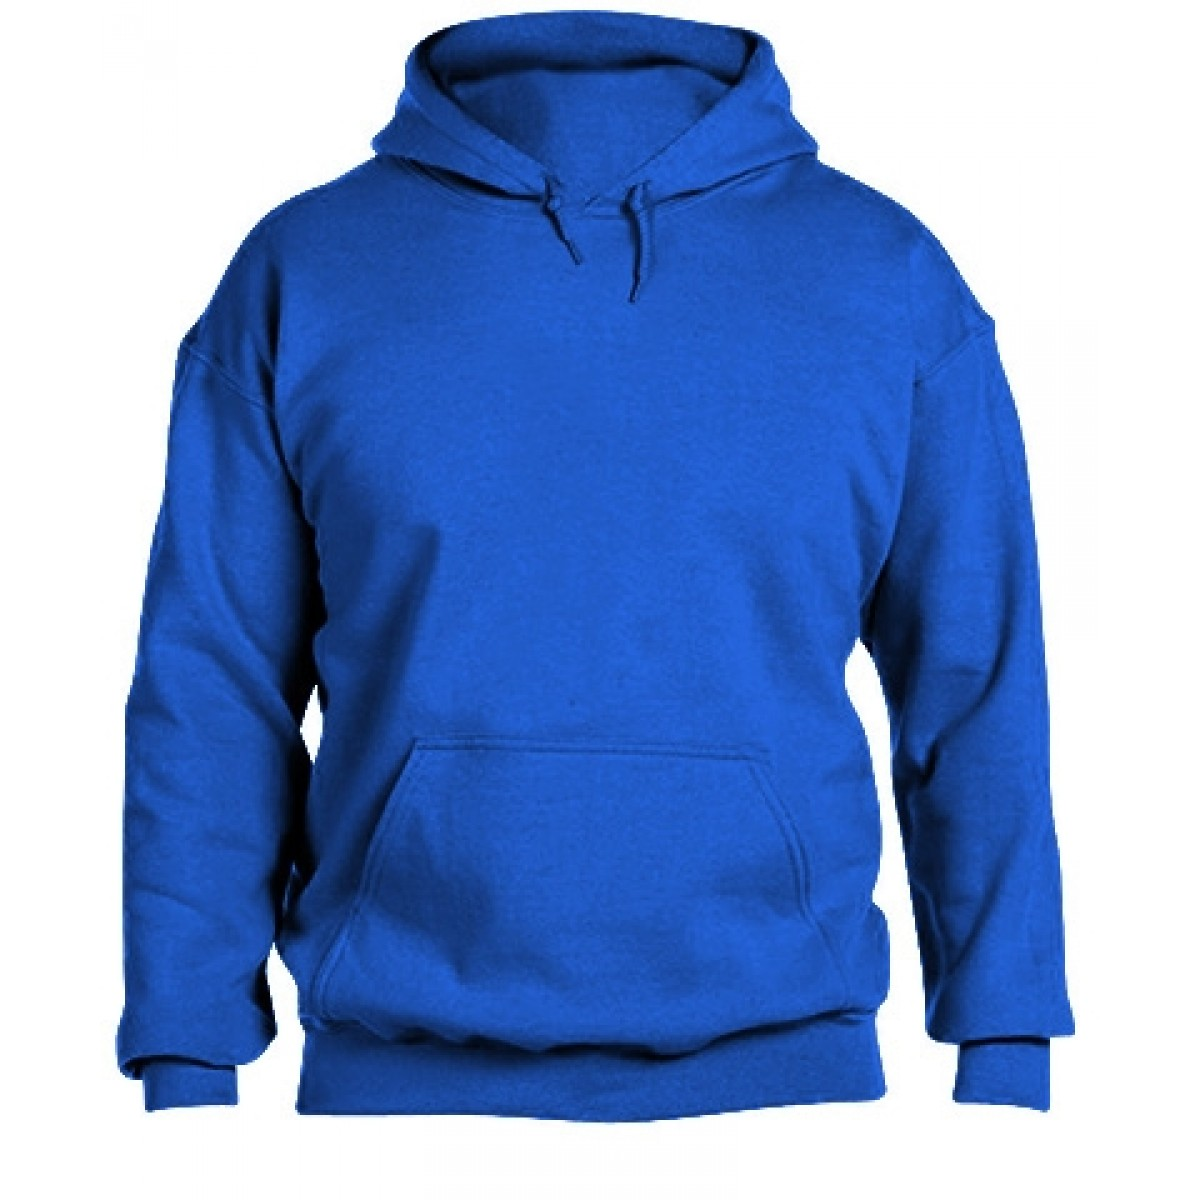 Solid Hooded Sweatshirt  50/50 Heavy Blend-Royal Blue-M